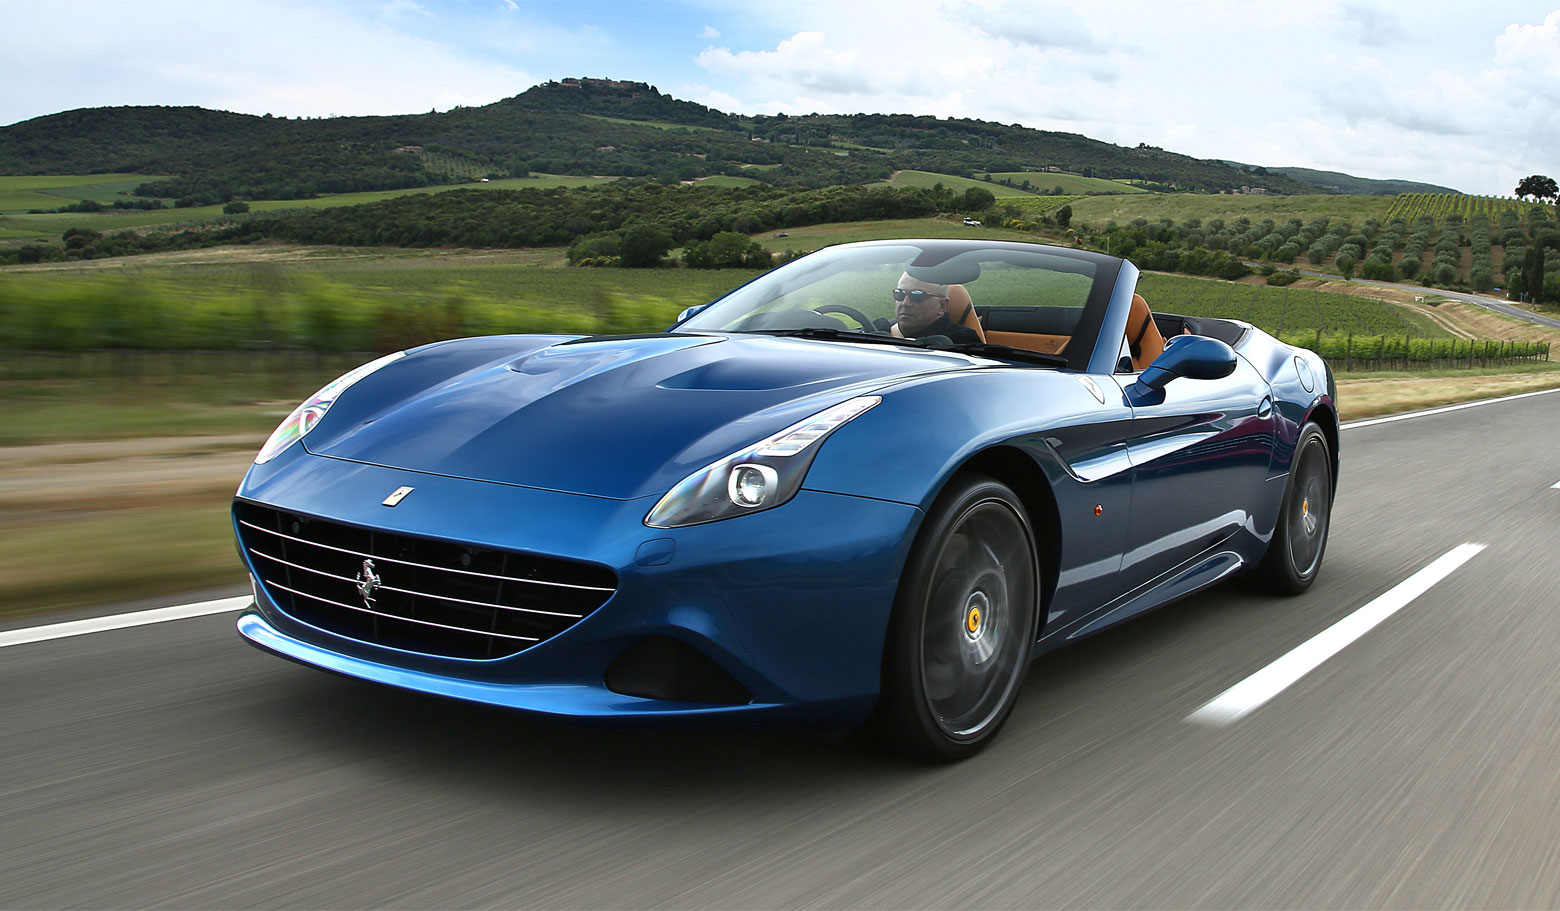 2016 ferrari california t review gtspirit. Black Bedroom Furniture Sets. Home Design Ideas